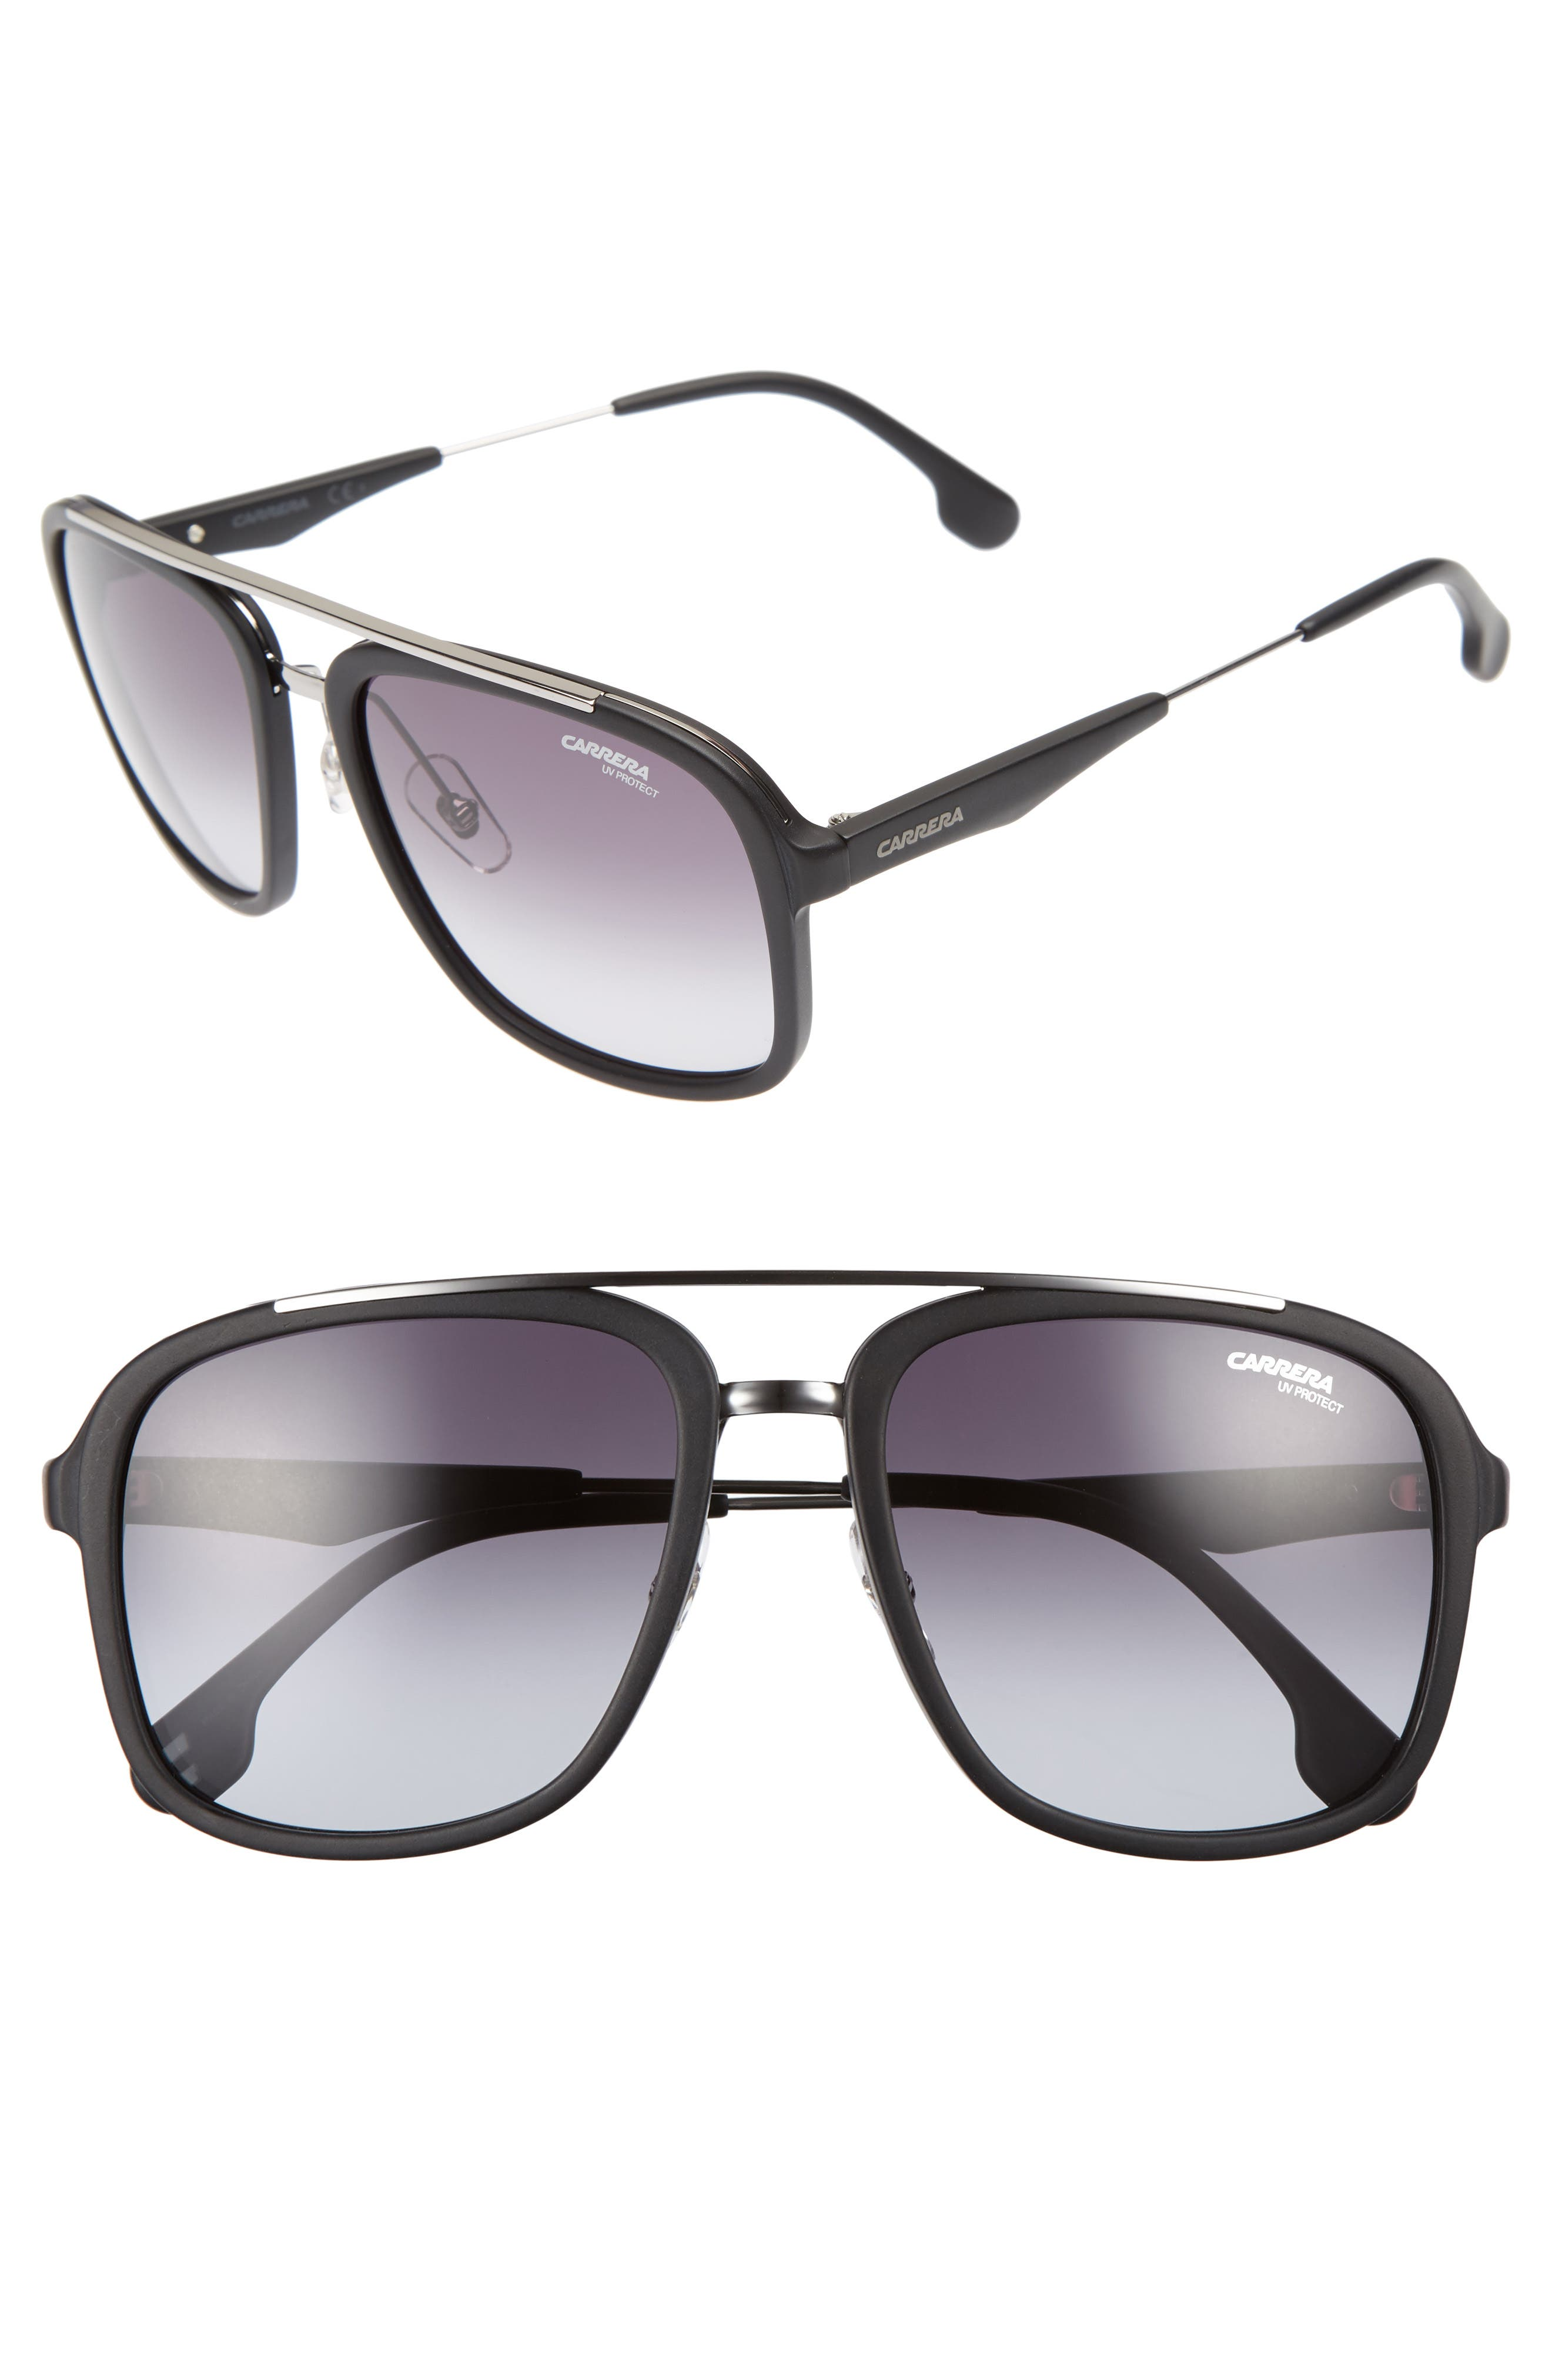 Carrera Eyewear 57Mm Sunglasses -